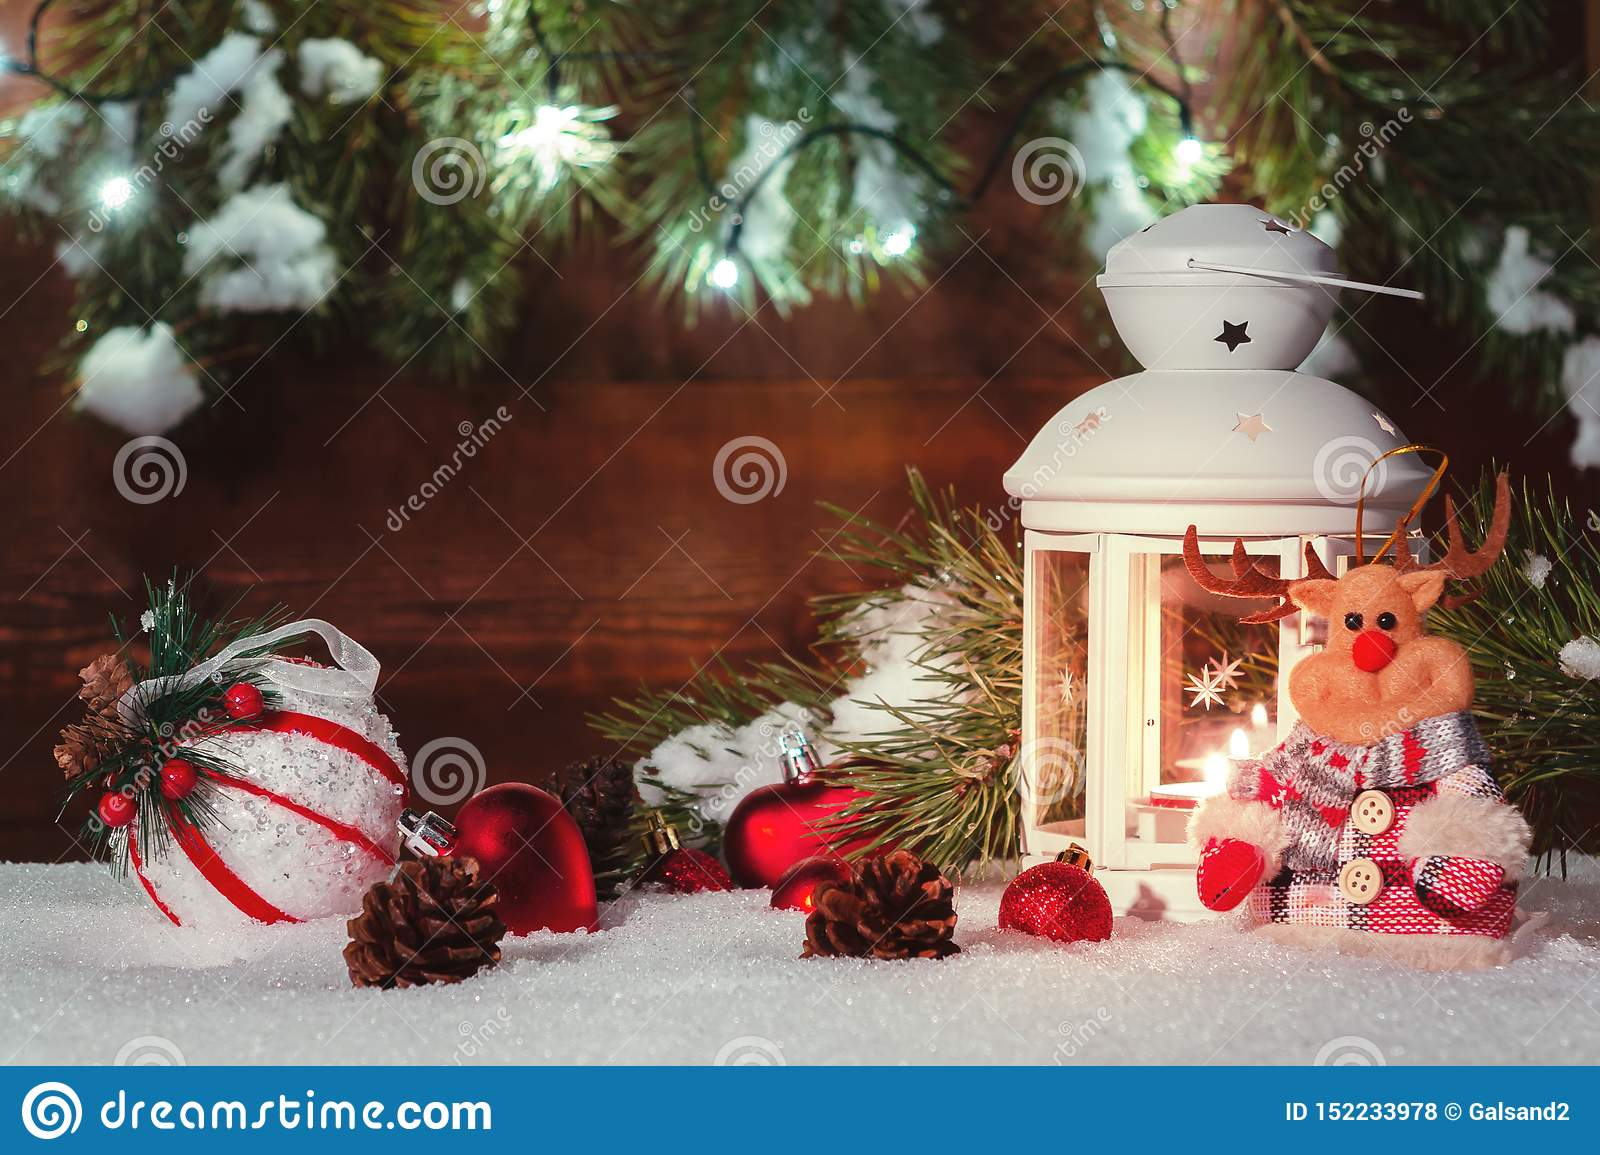 White Lantern With A Burning Candle Stands In The Snow Surrounded By Christmas Decorations On The Background Of A Wooden Stock Photo Image Of Ornamental Lantern 152233978